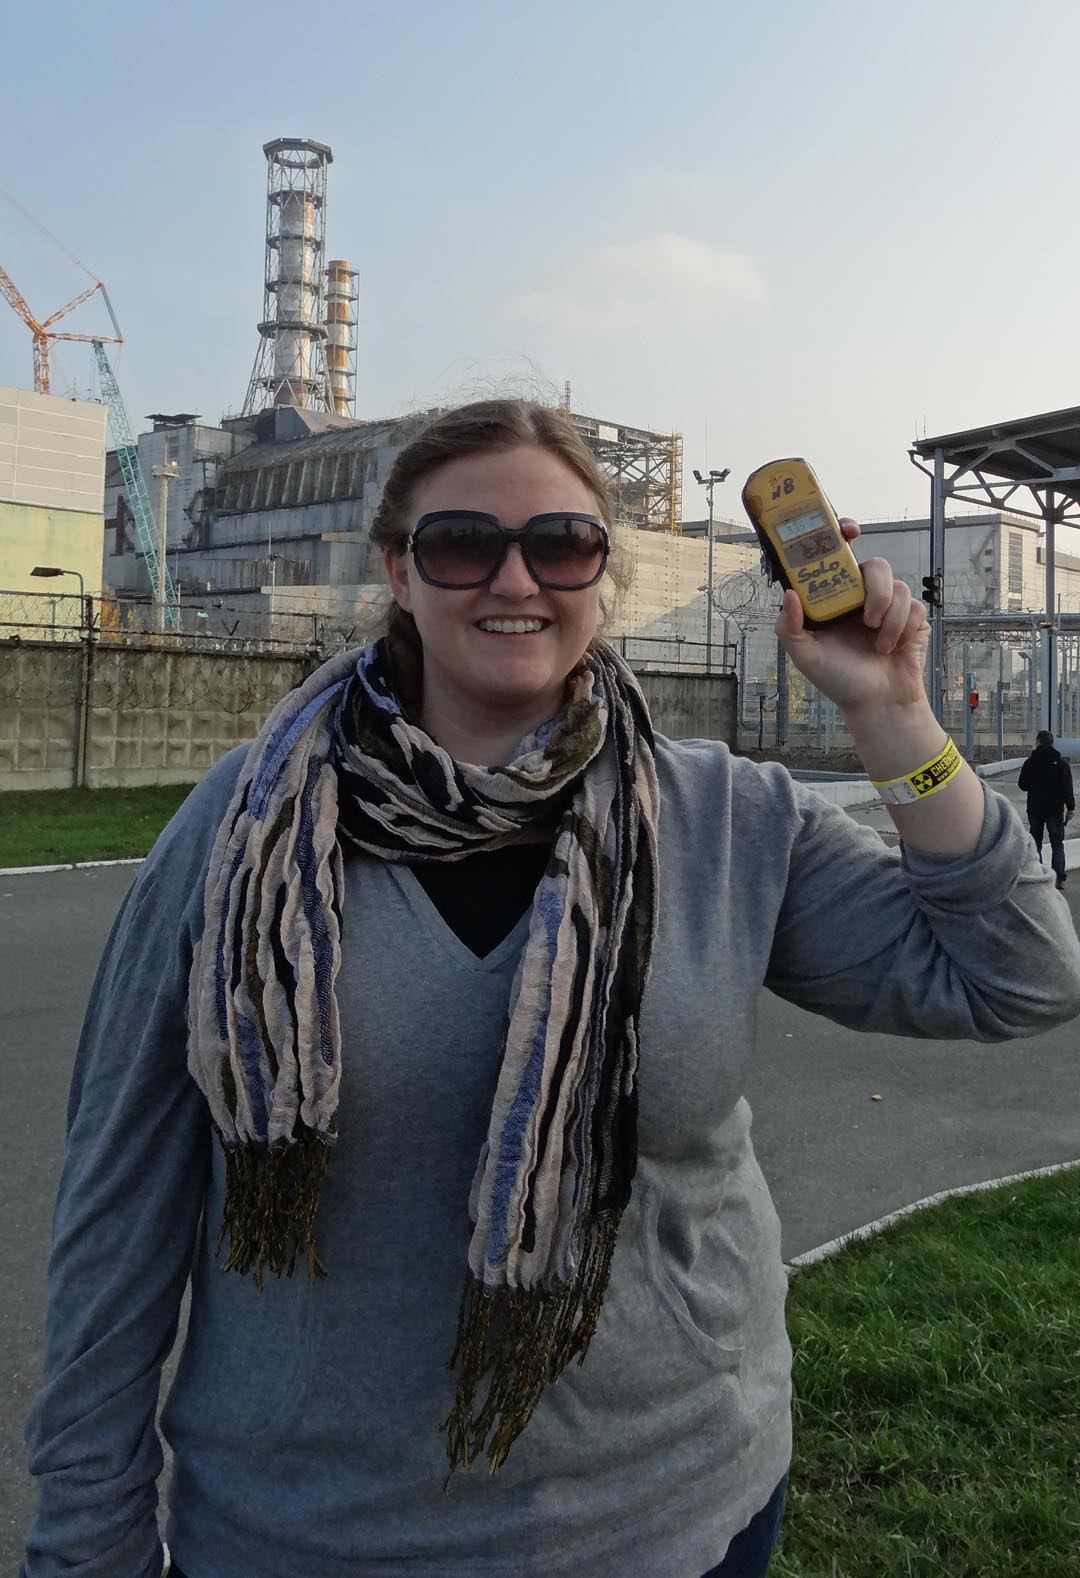 Solo Travel in Chernobyl